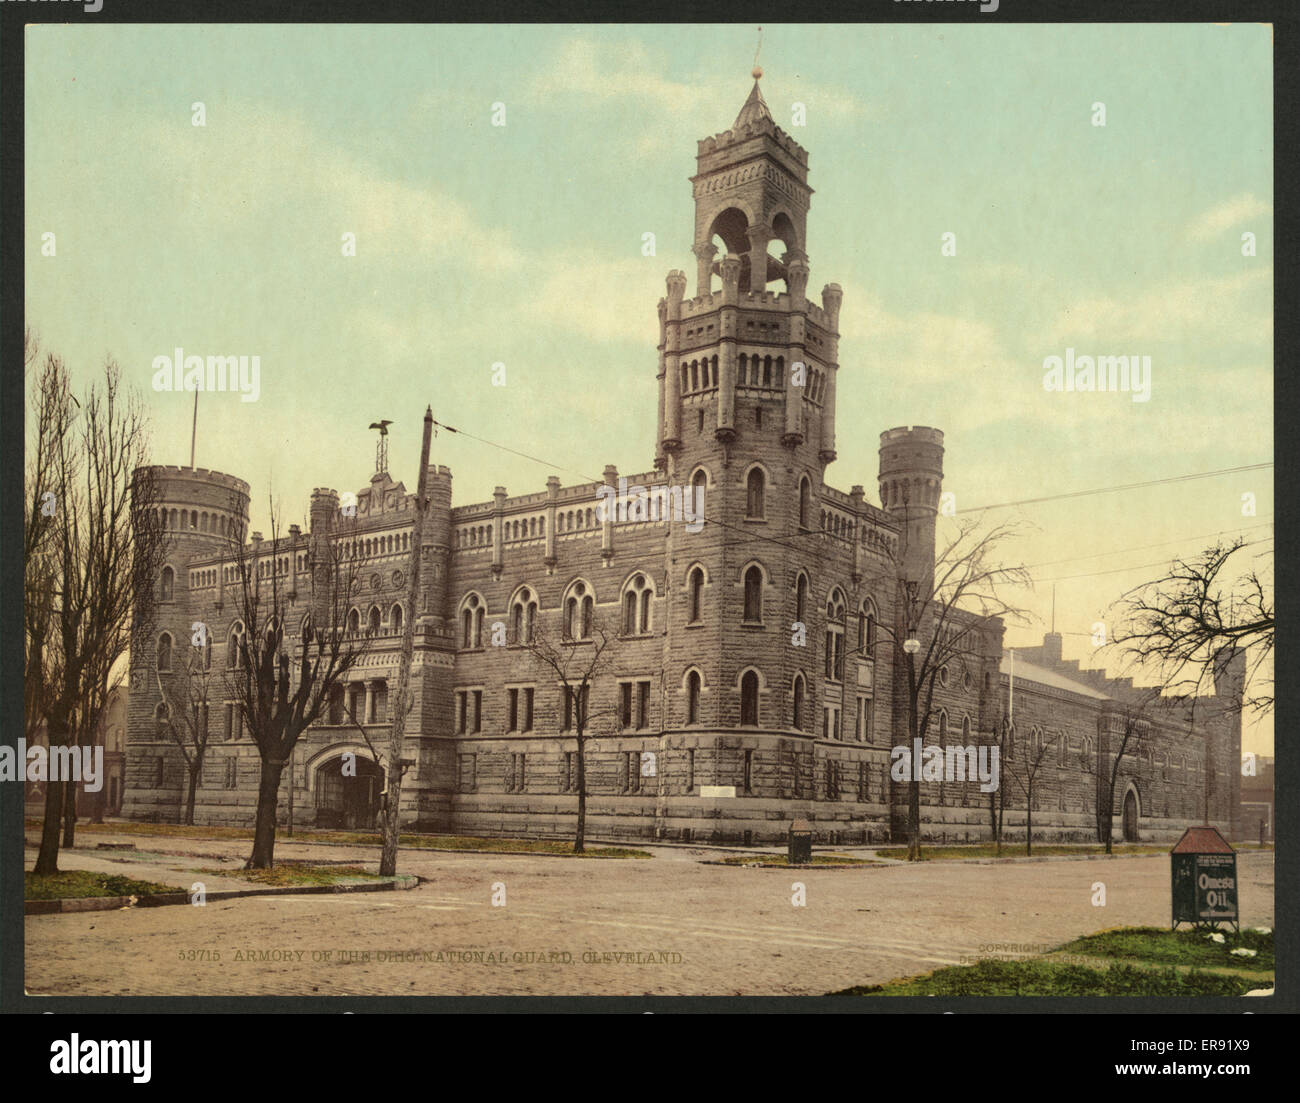 Armory of the Ohio National Guard, Cleveland. Date c1901. - Stock Image